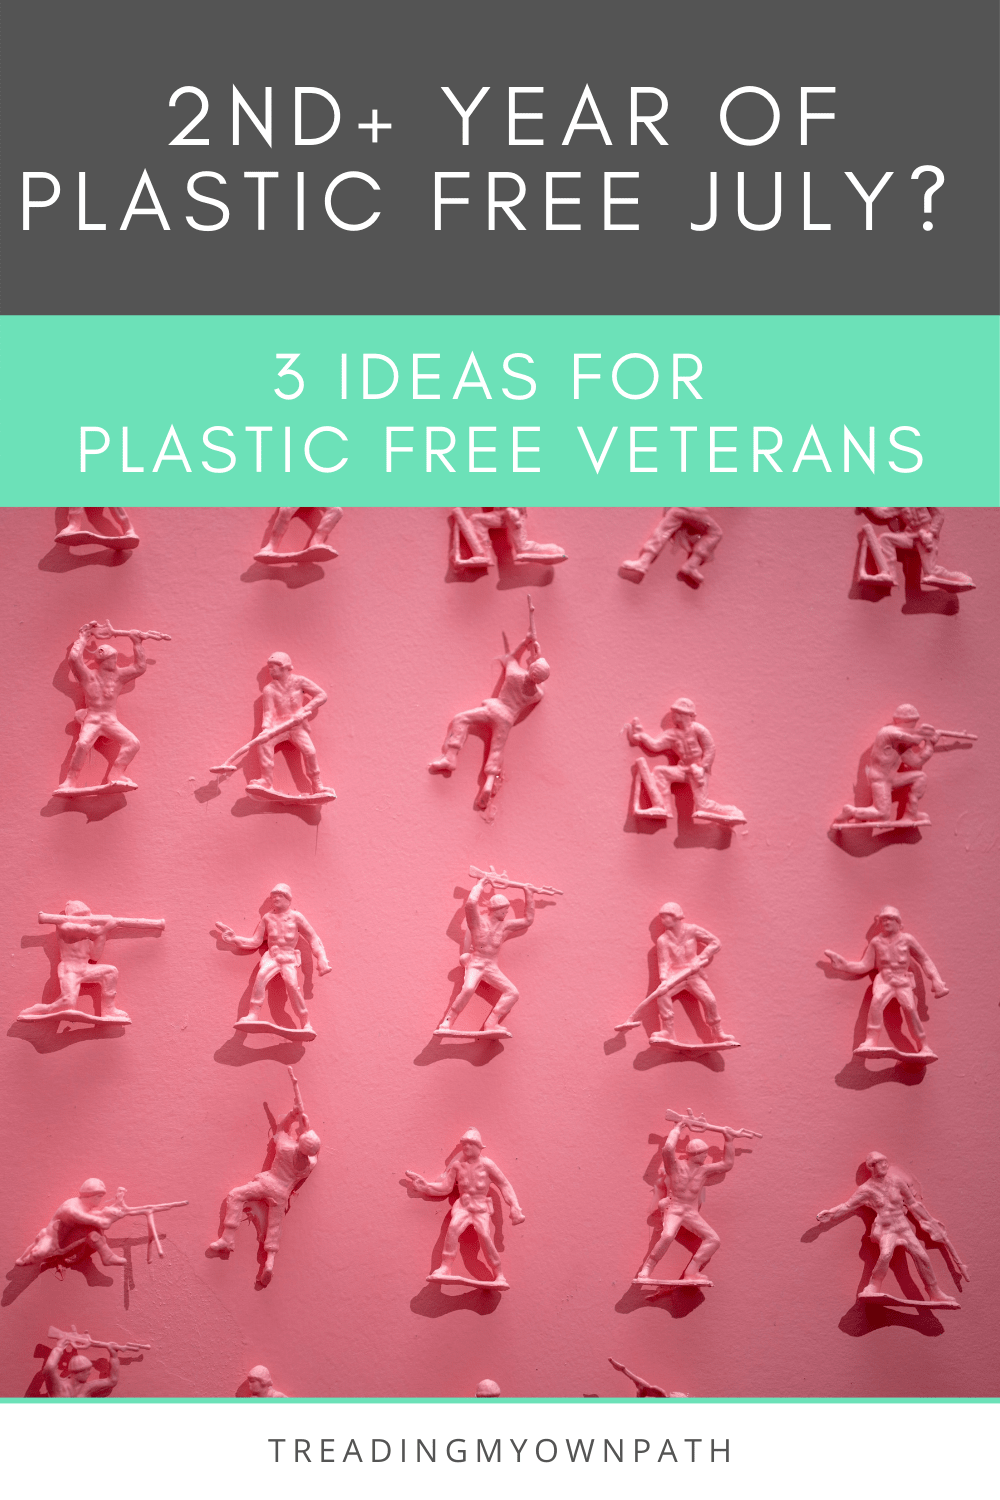 Join the \'War on Plastic\' with Plastic Free July (+ 3 Ideas for Plastic Free Veterans)